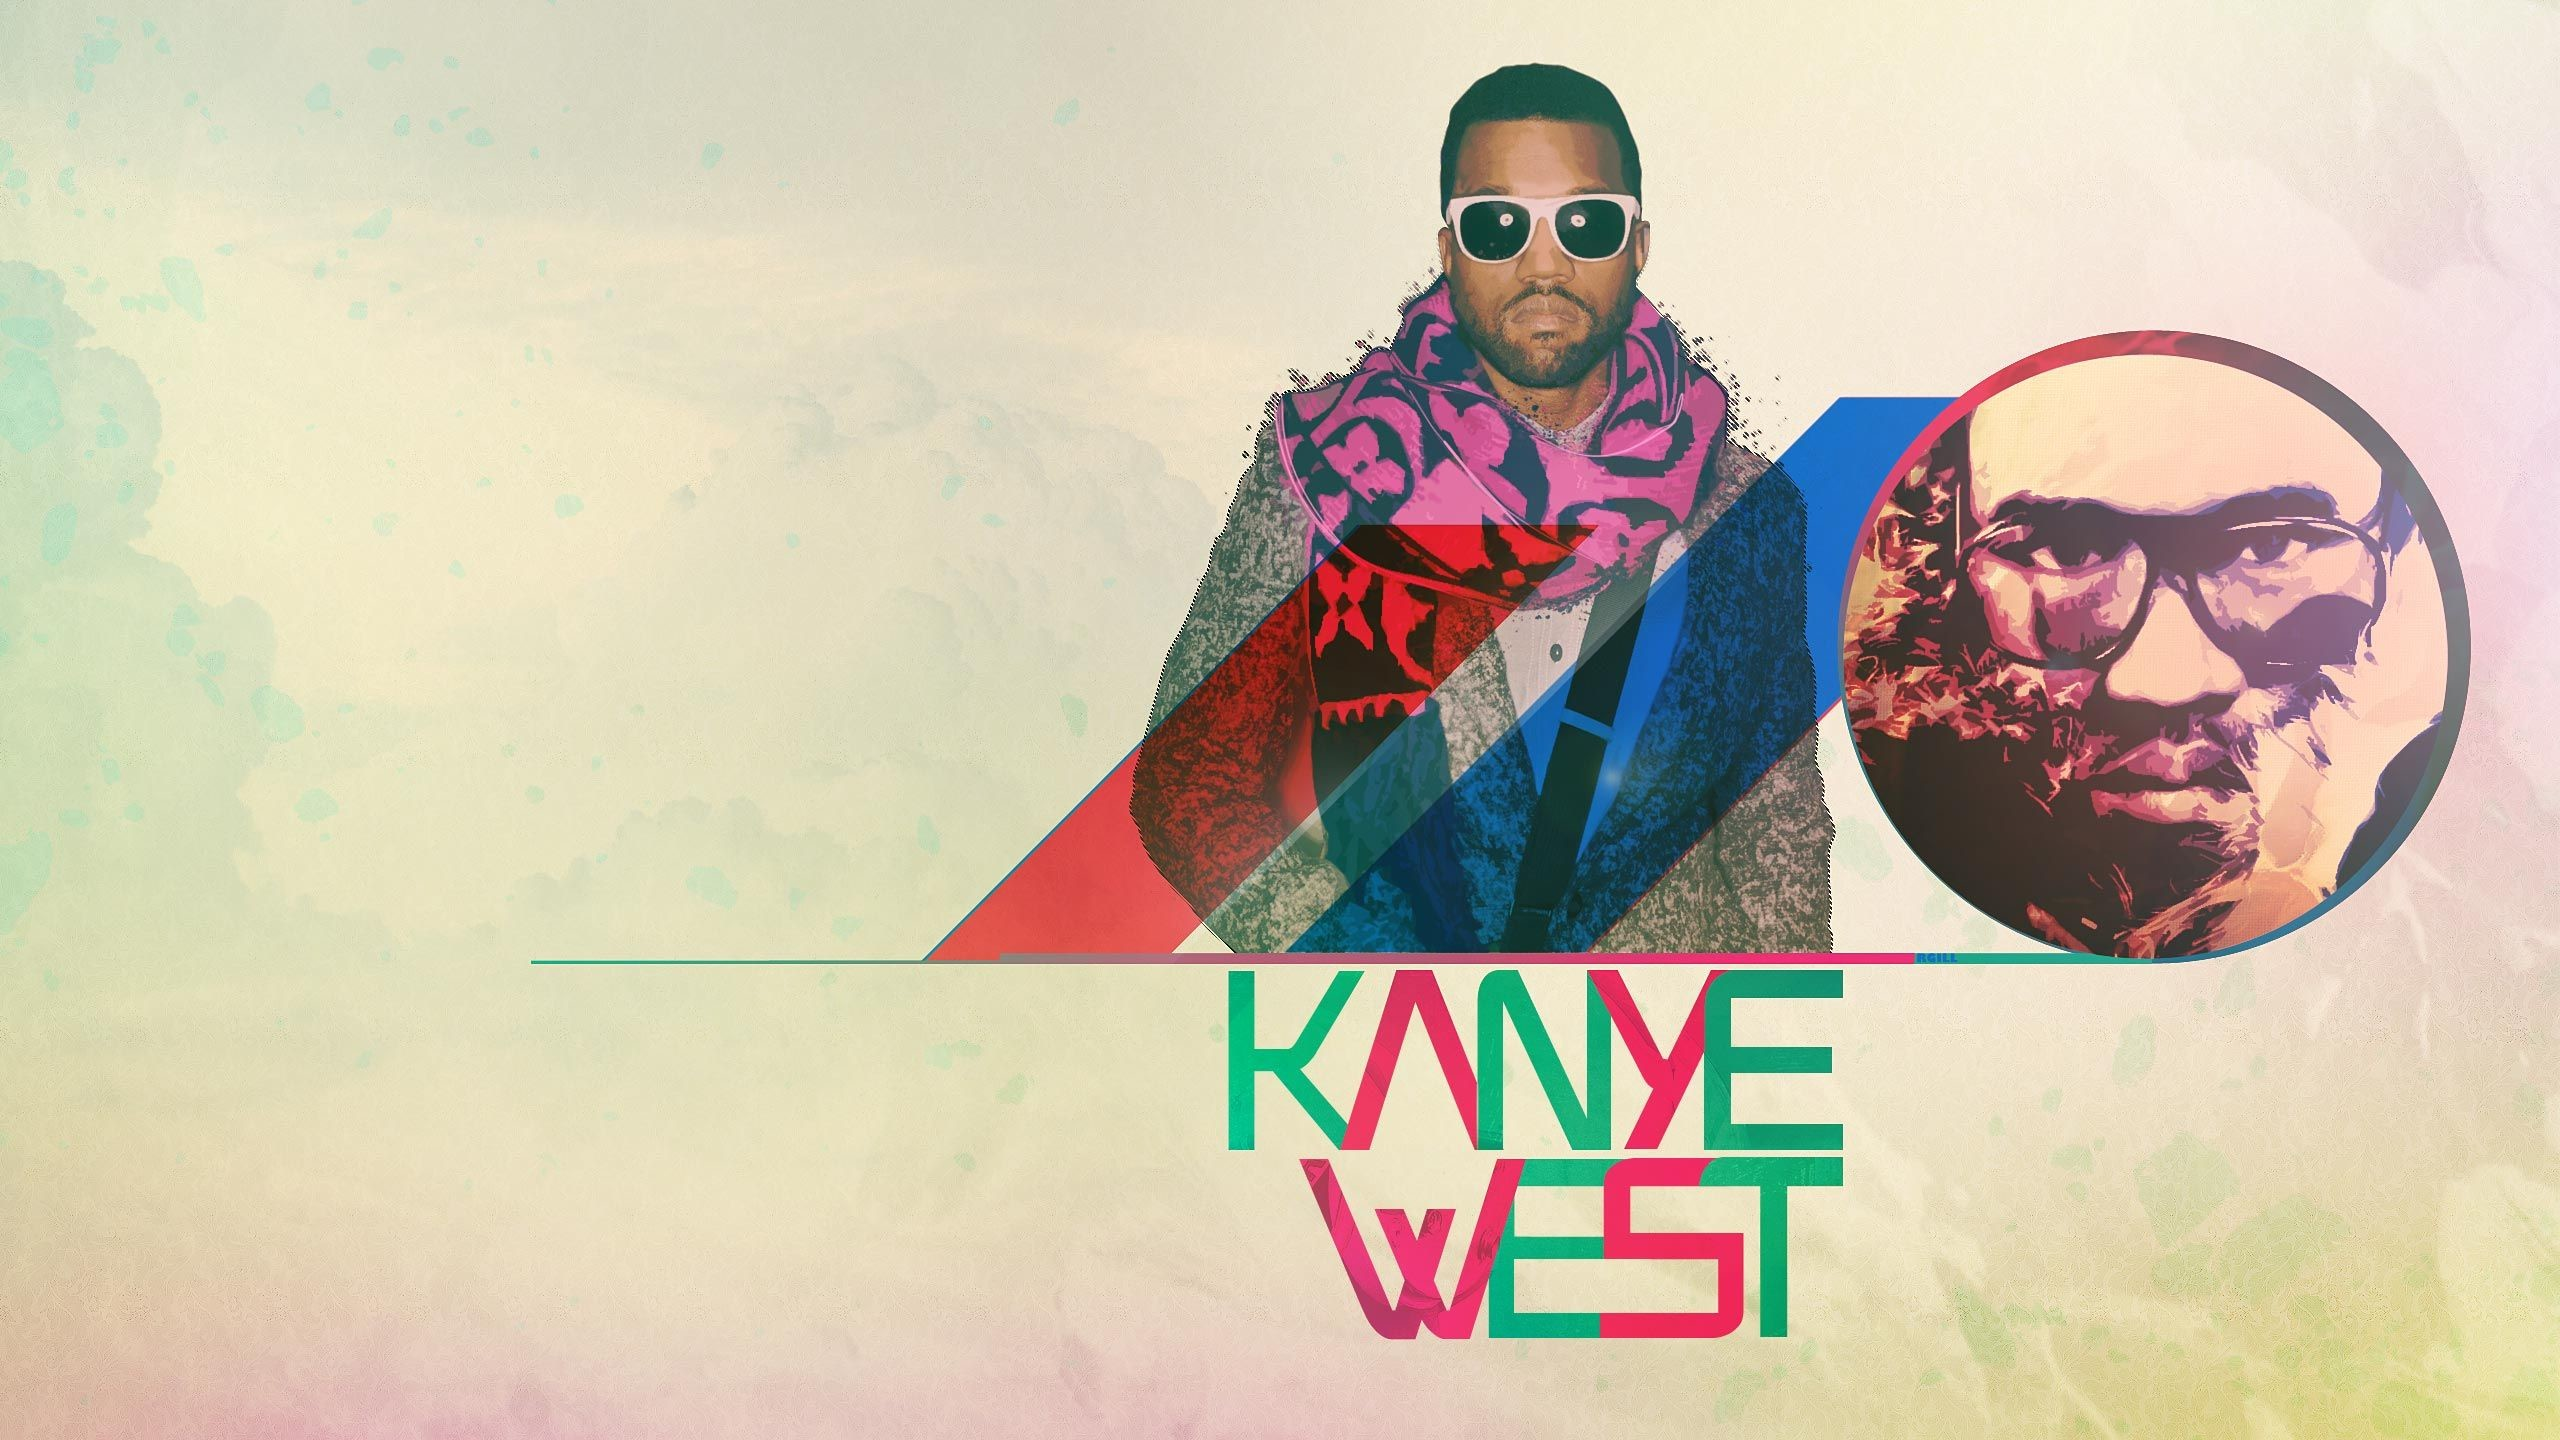 kanye west iphone wallpaper – photo #7. I Refuse to Believe This Rumor  About the iPhone With No